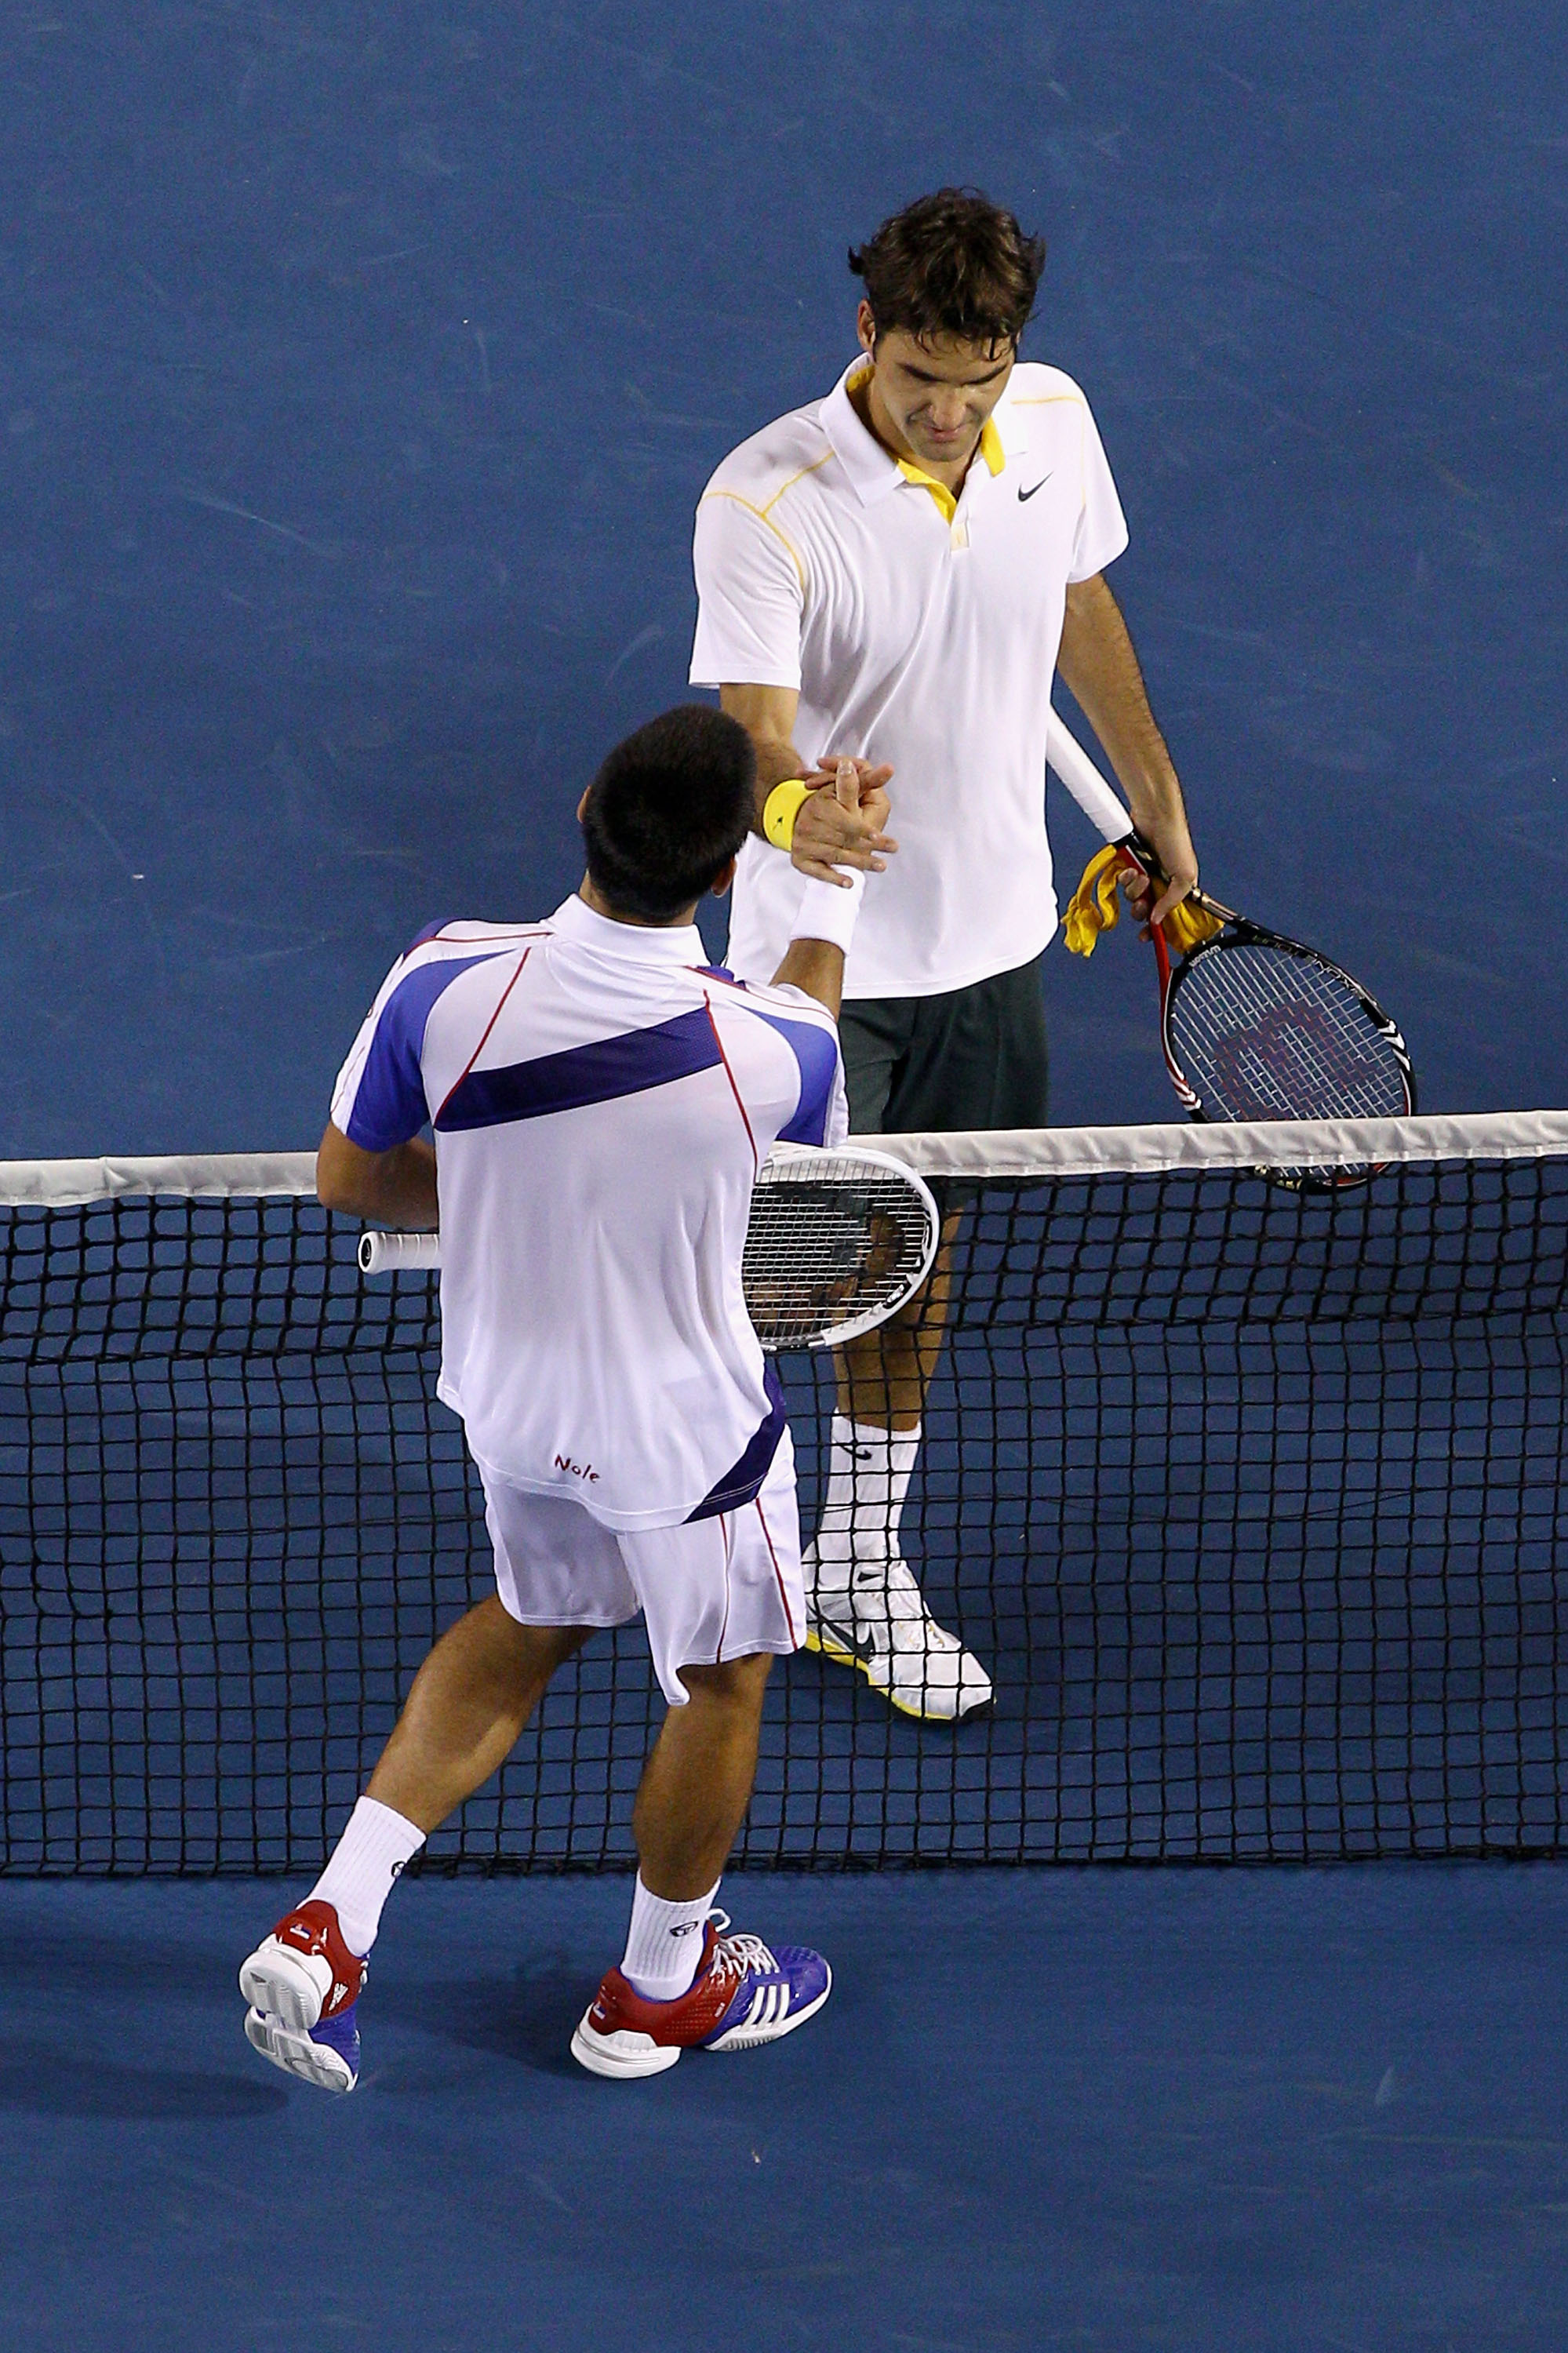 MELBOURNE, AUSTRALIA - JANUARY 27:  Roger Federer of Switzerland congratulates Novak Djokovic of Serbia after their semifinal match during day eleven of the 2011 Australian Open at Melbourne Park on January 27, 2011 in Melbourne, Australia.  (Photo by Qui